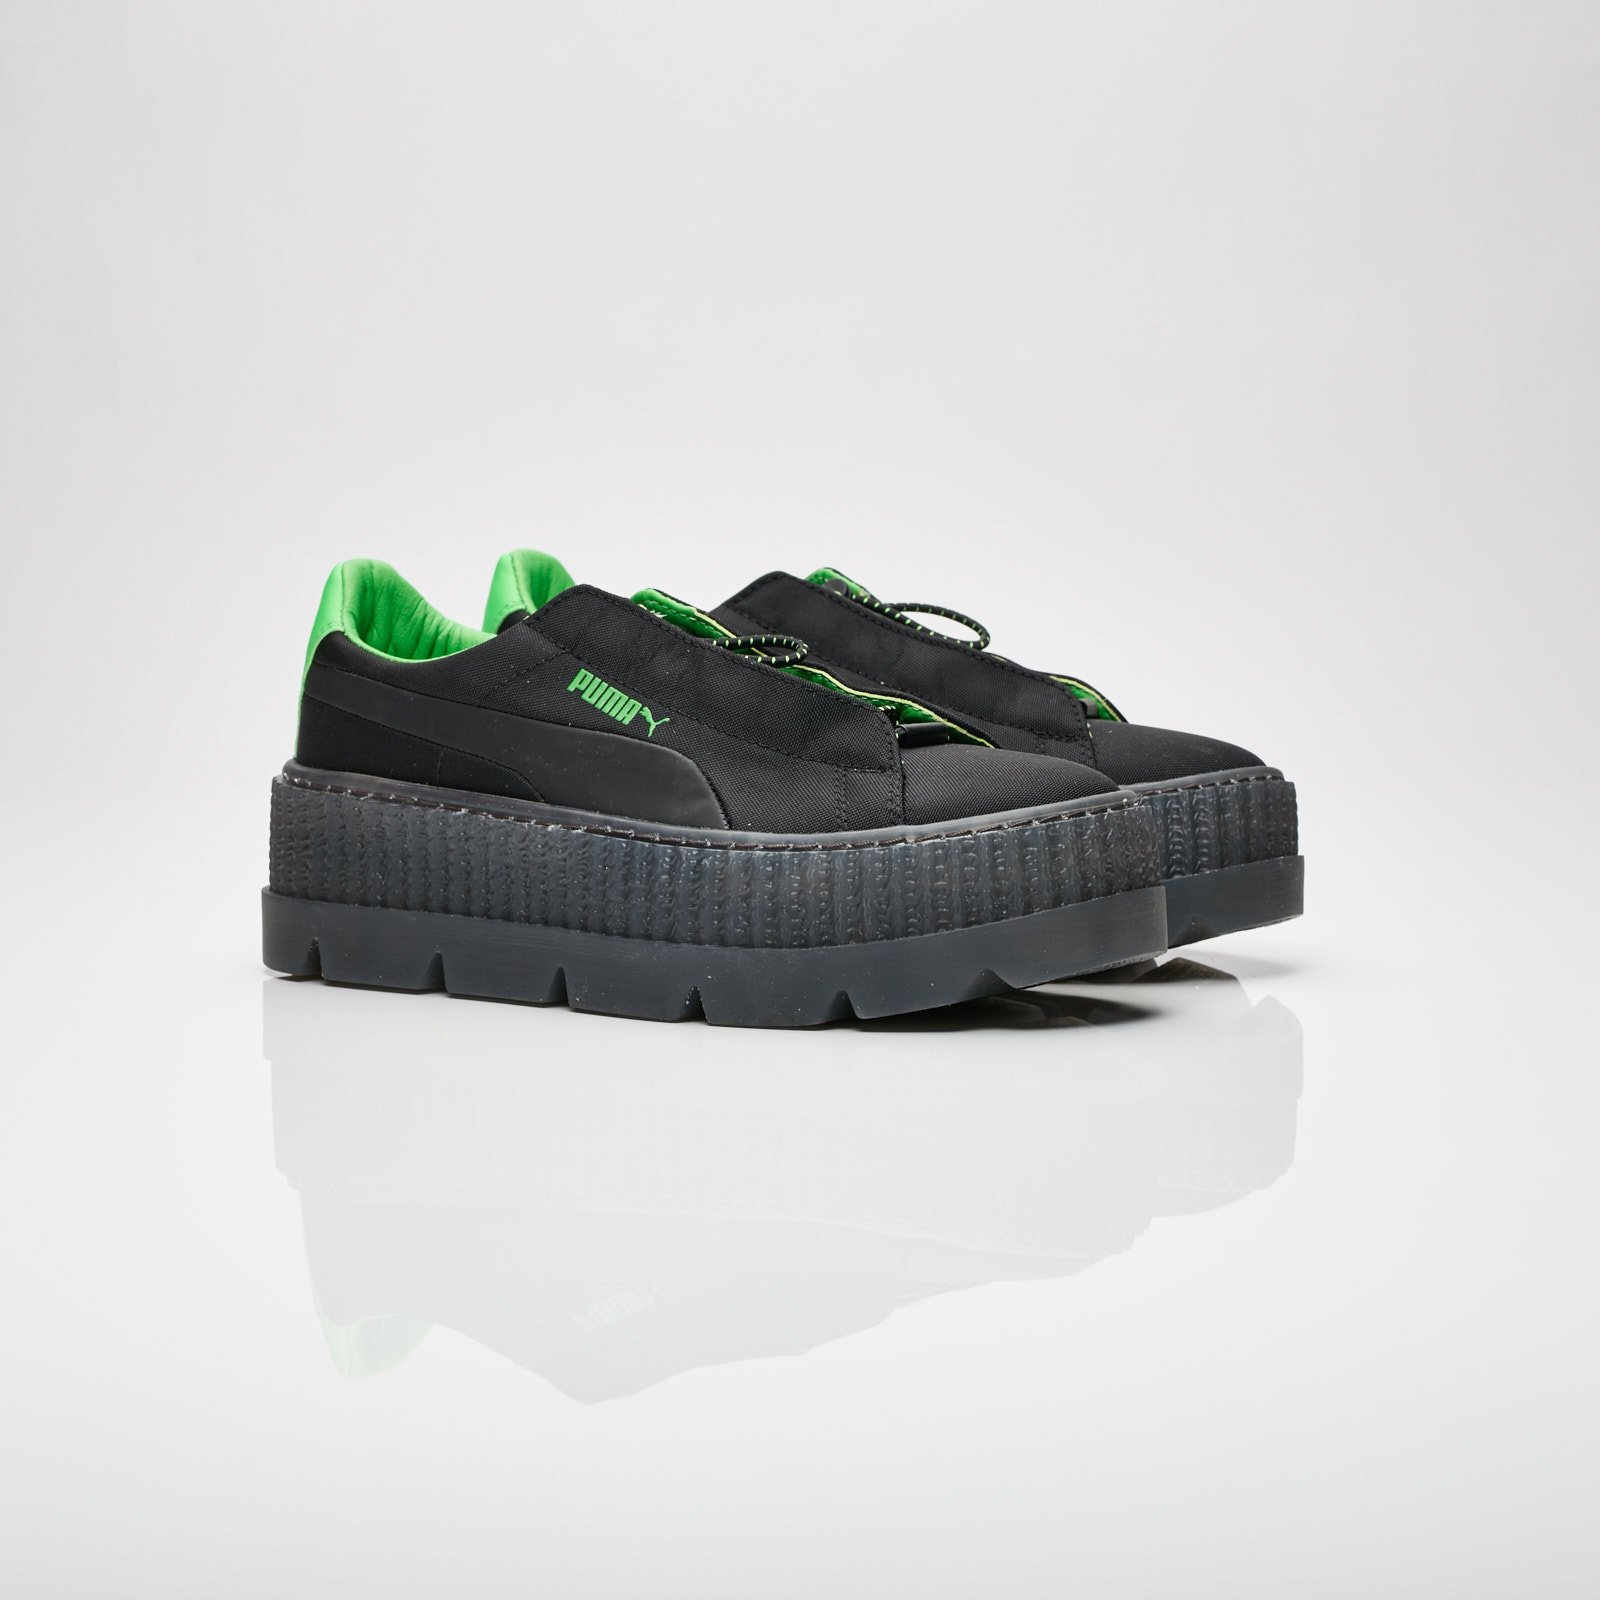 best service e6ed1 7363d Puma Cleated Creeper Surf WNS - 367681-03 - Sneakersnstuff ...